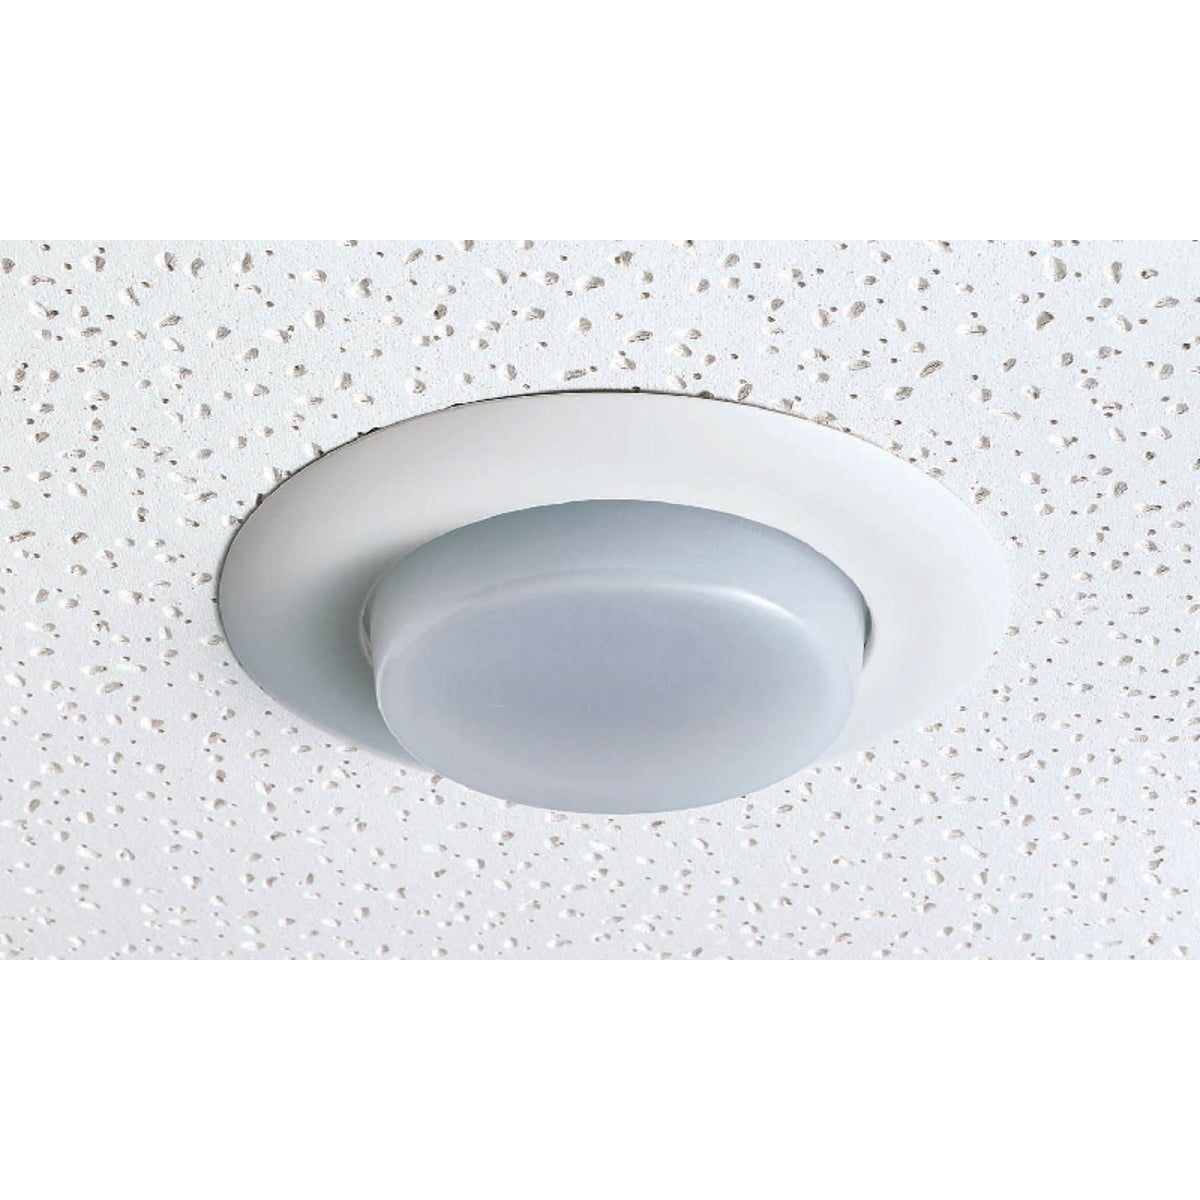 RECESSED FIXTURE TRIM - TSH16 by Philips Consumer Lum